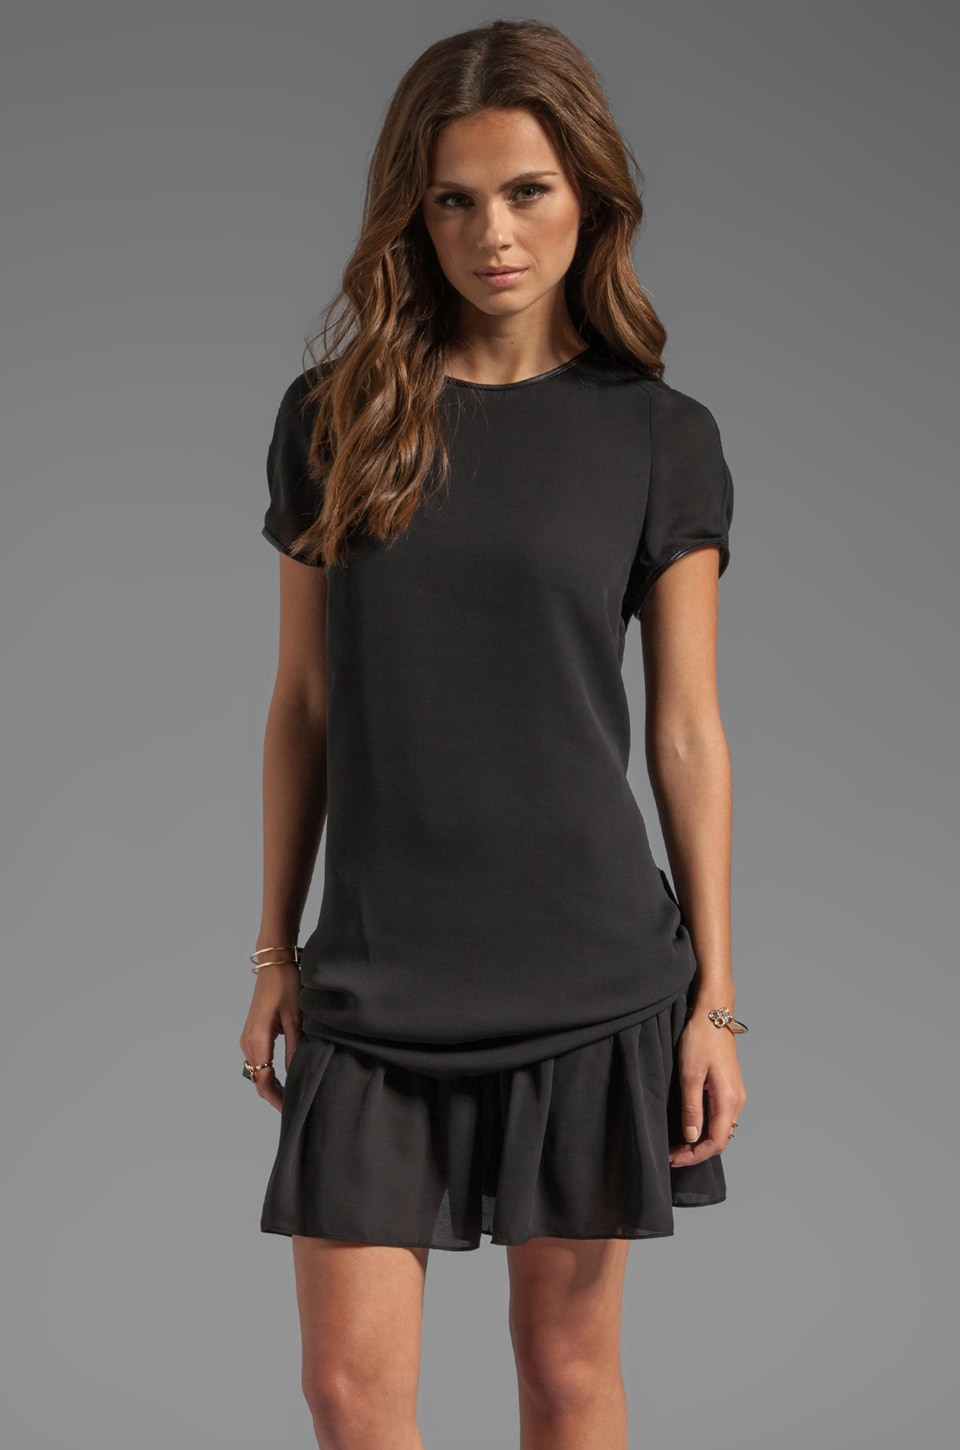 G-Star Barrow Dress in Black